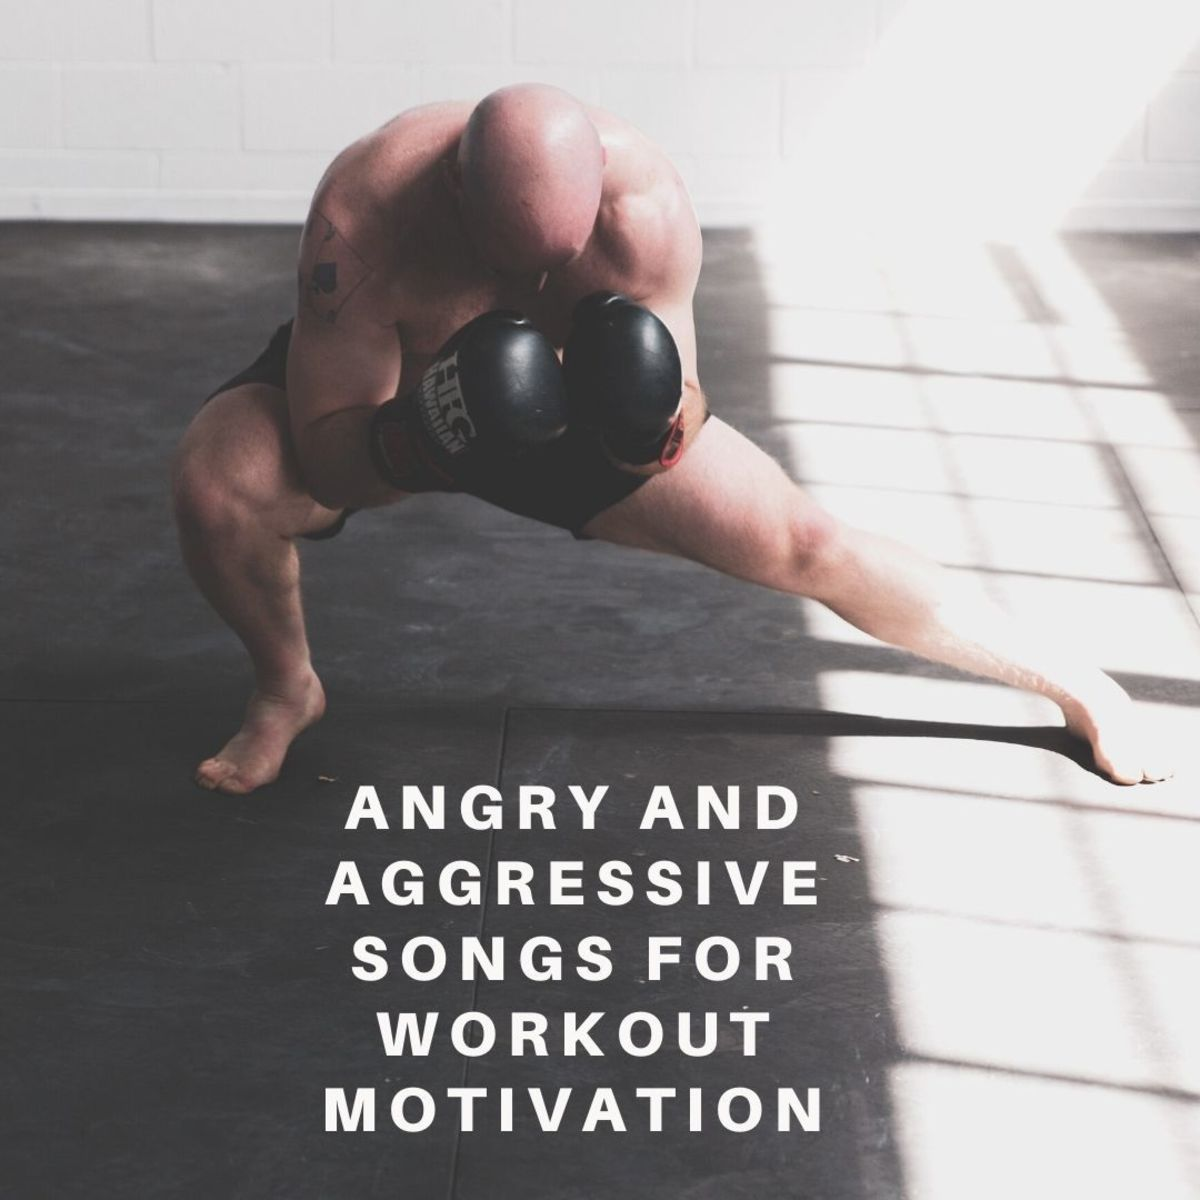 Get motivated to work out hard with these angry and aggressive tracks!